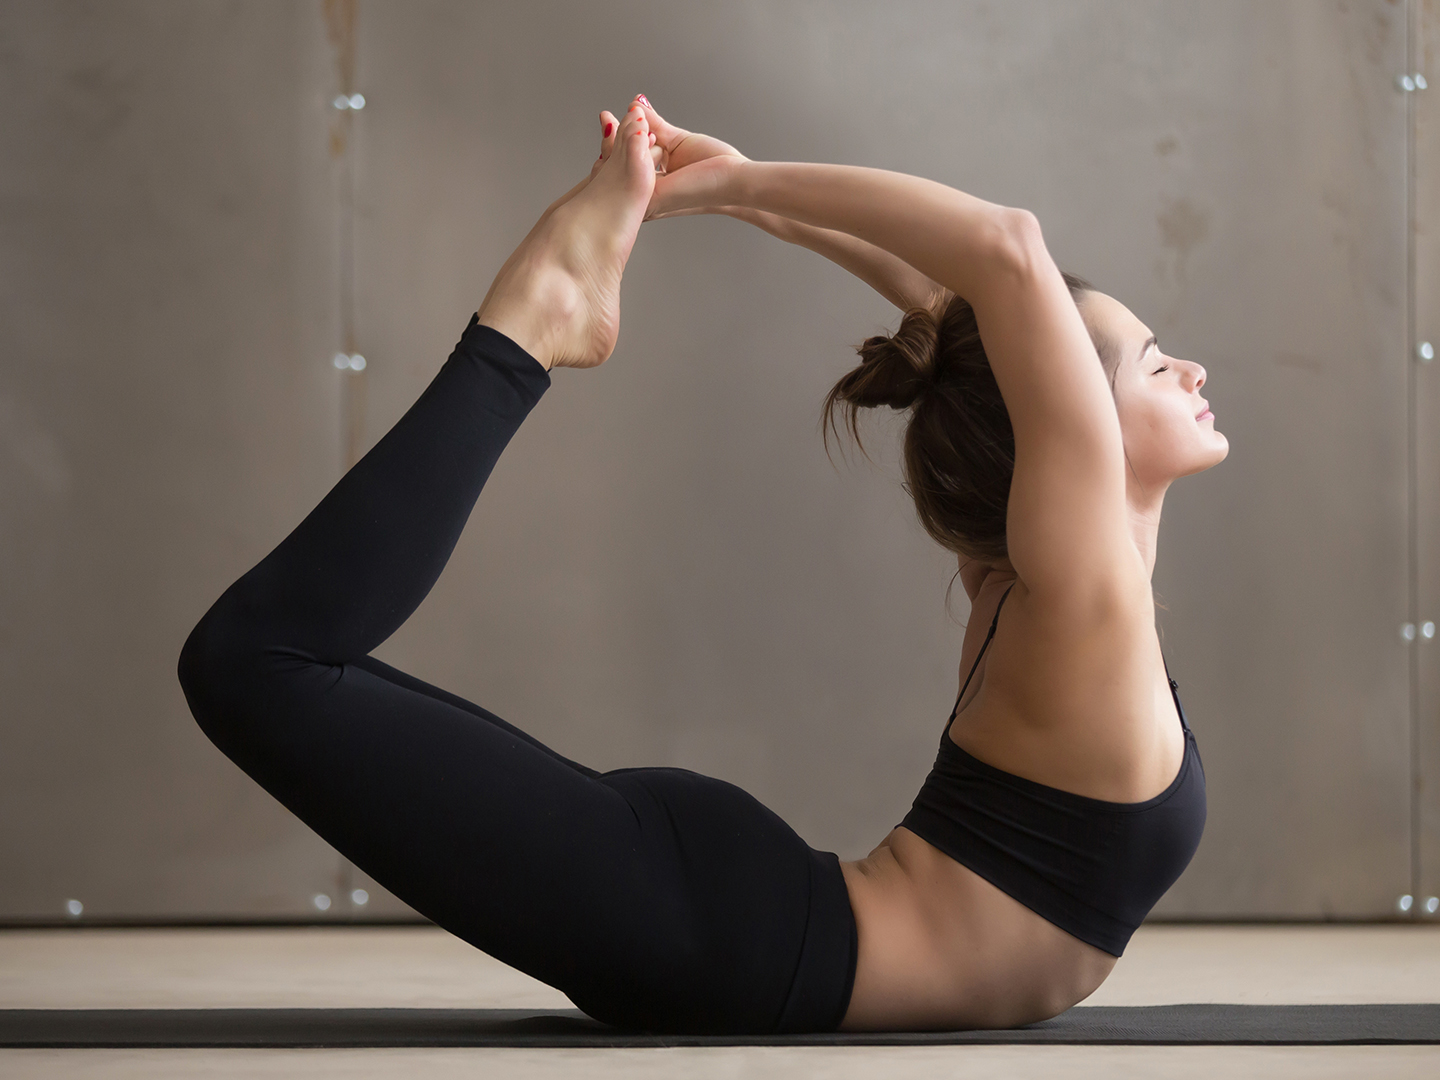 Yoga poses that can build immunity